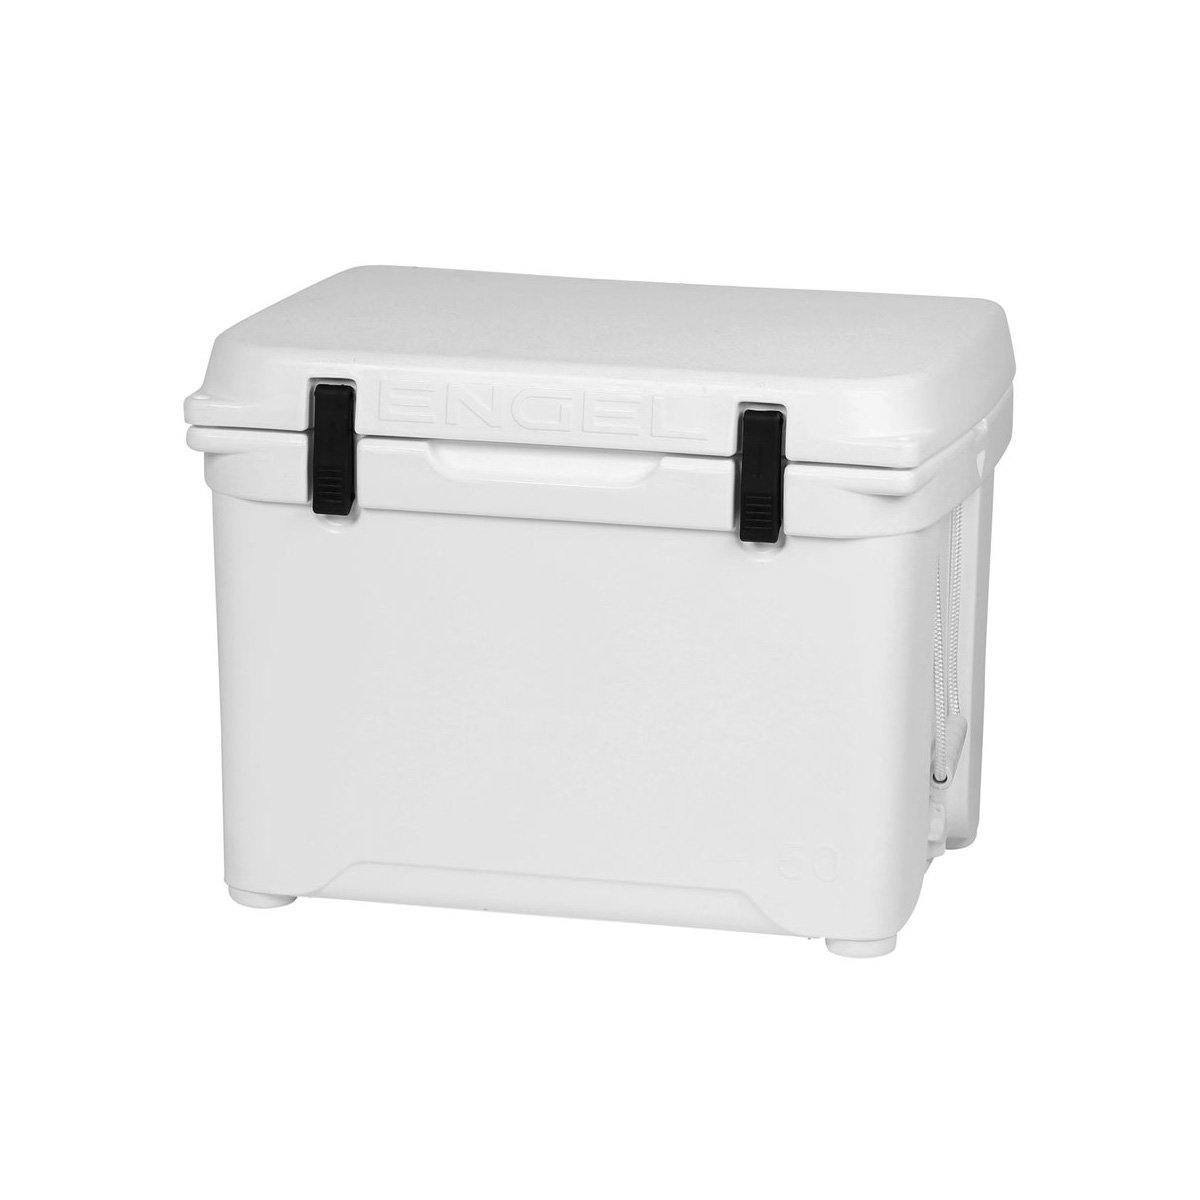 Engel 50 Hard Cooler (4349819846728)